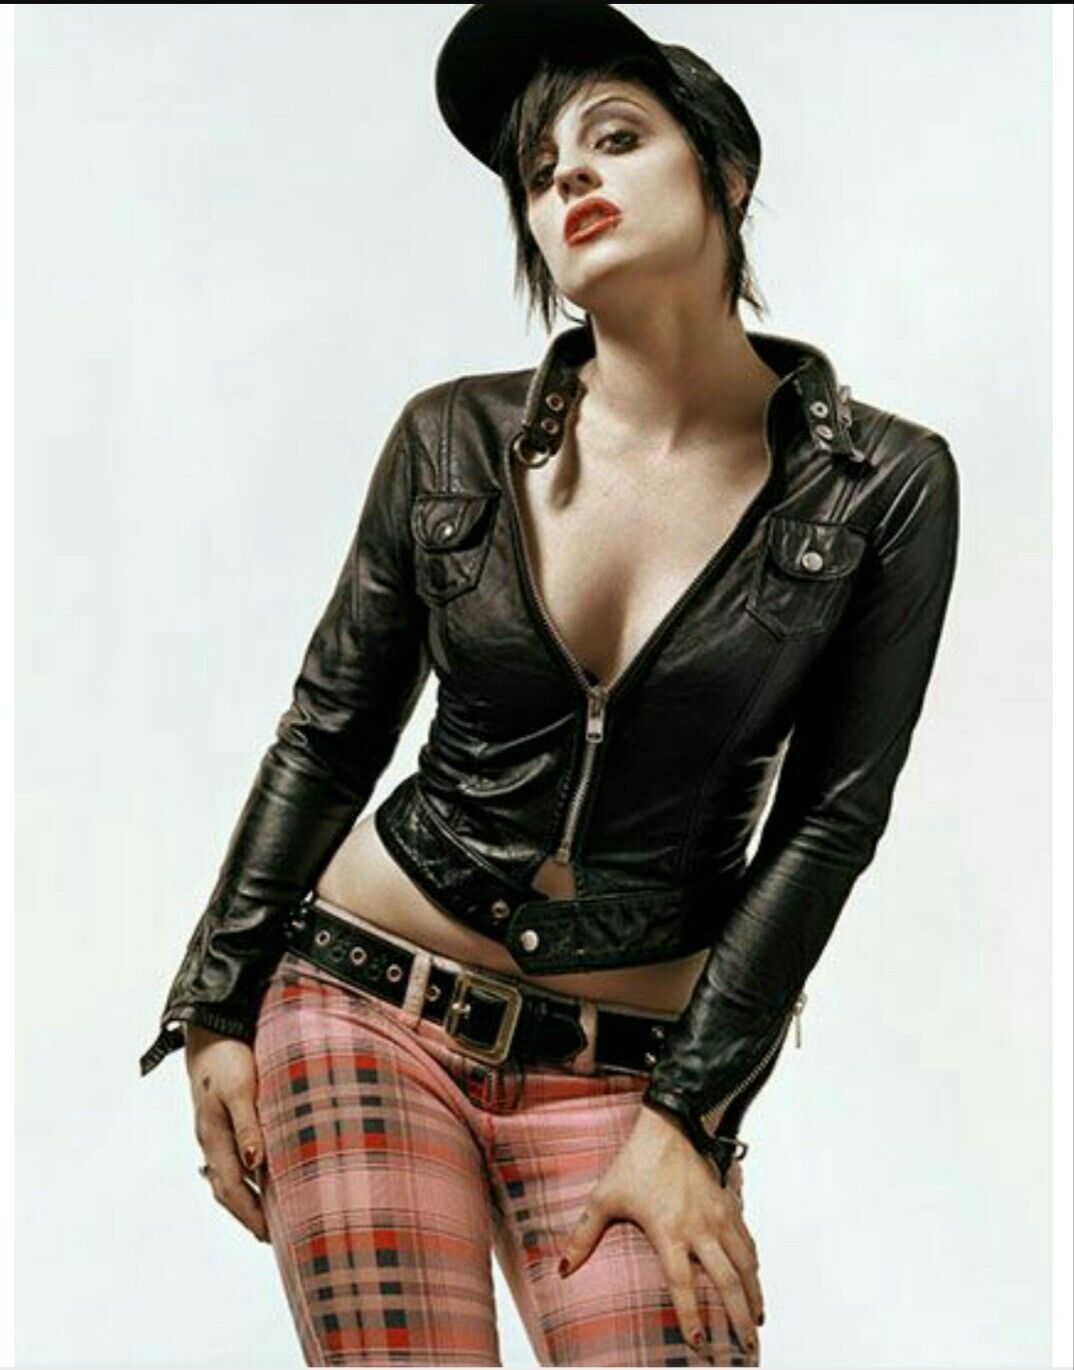 Brody dalle naked images